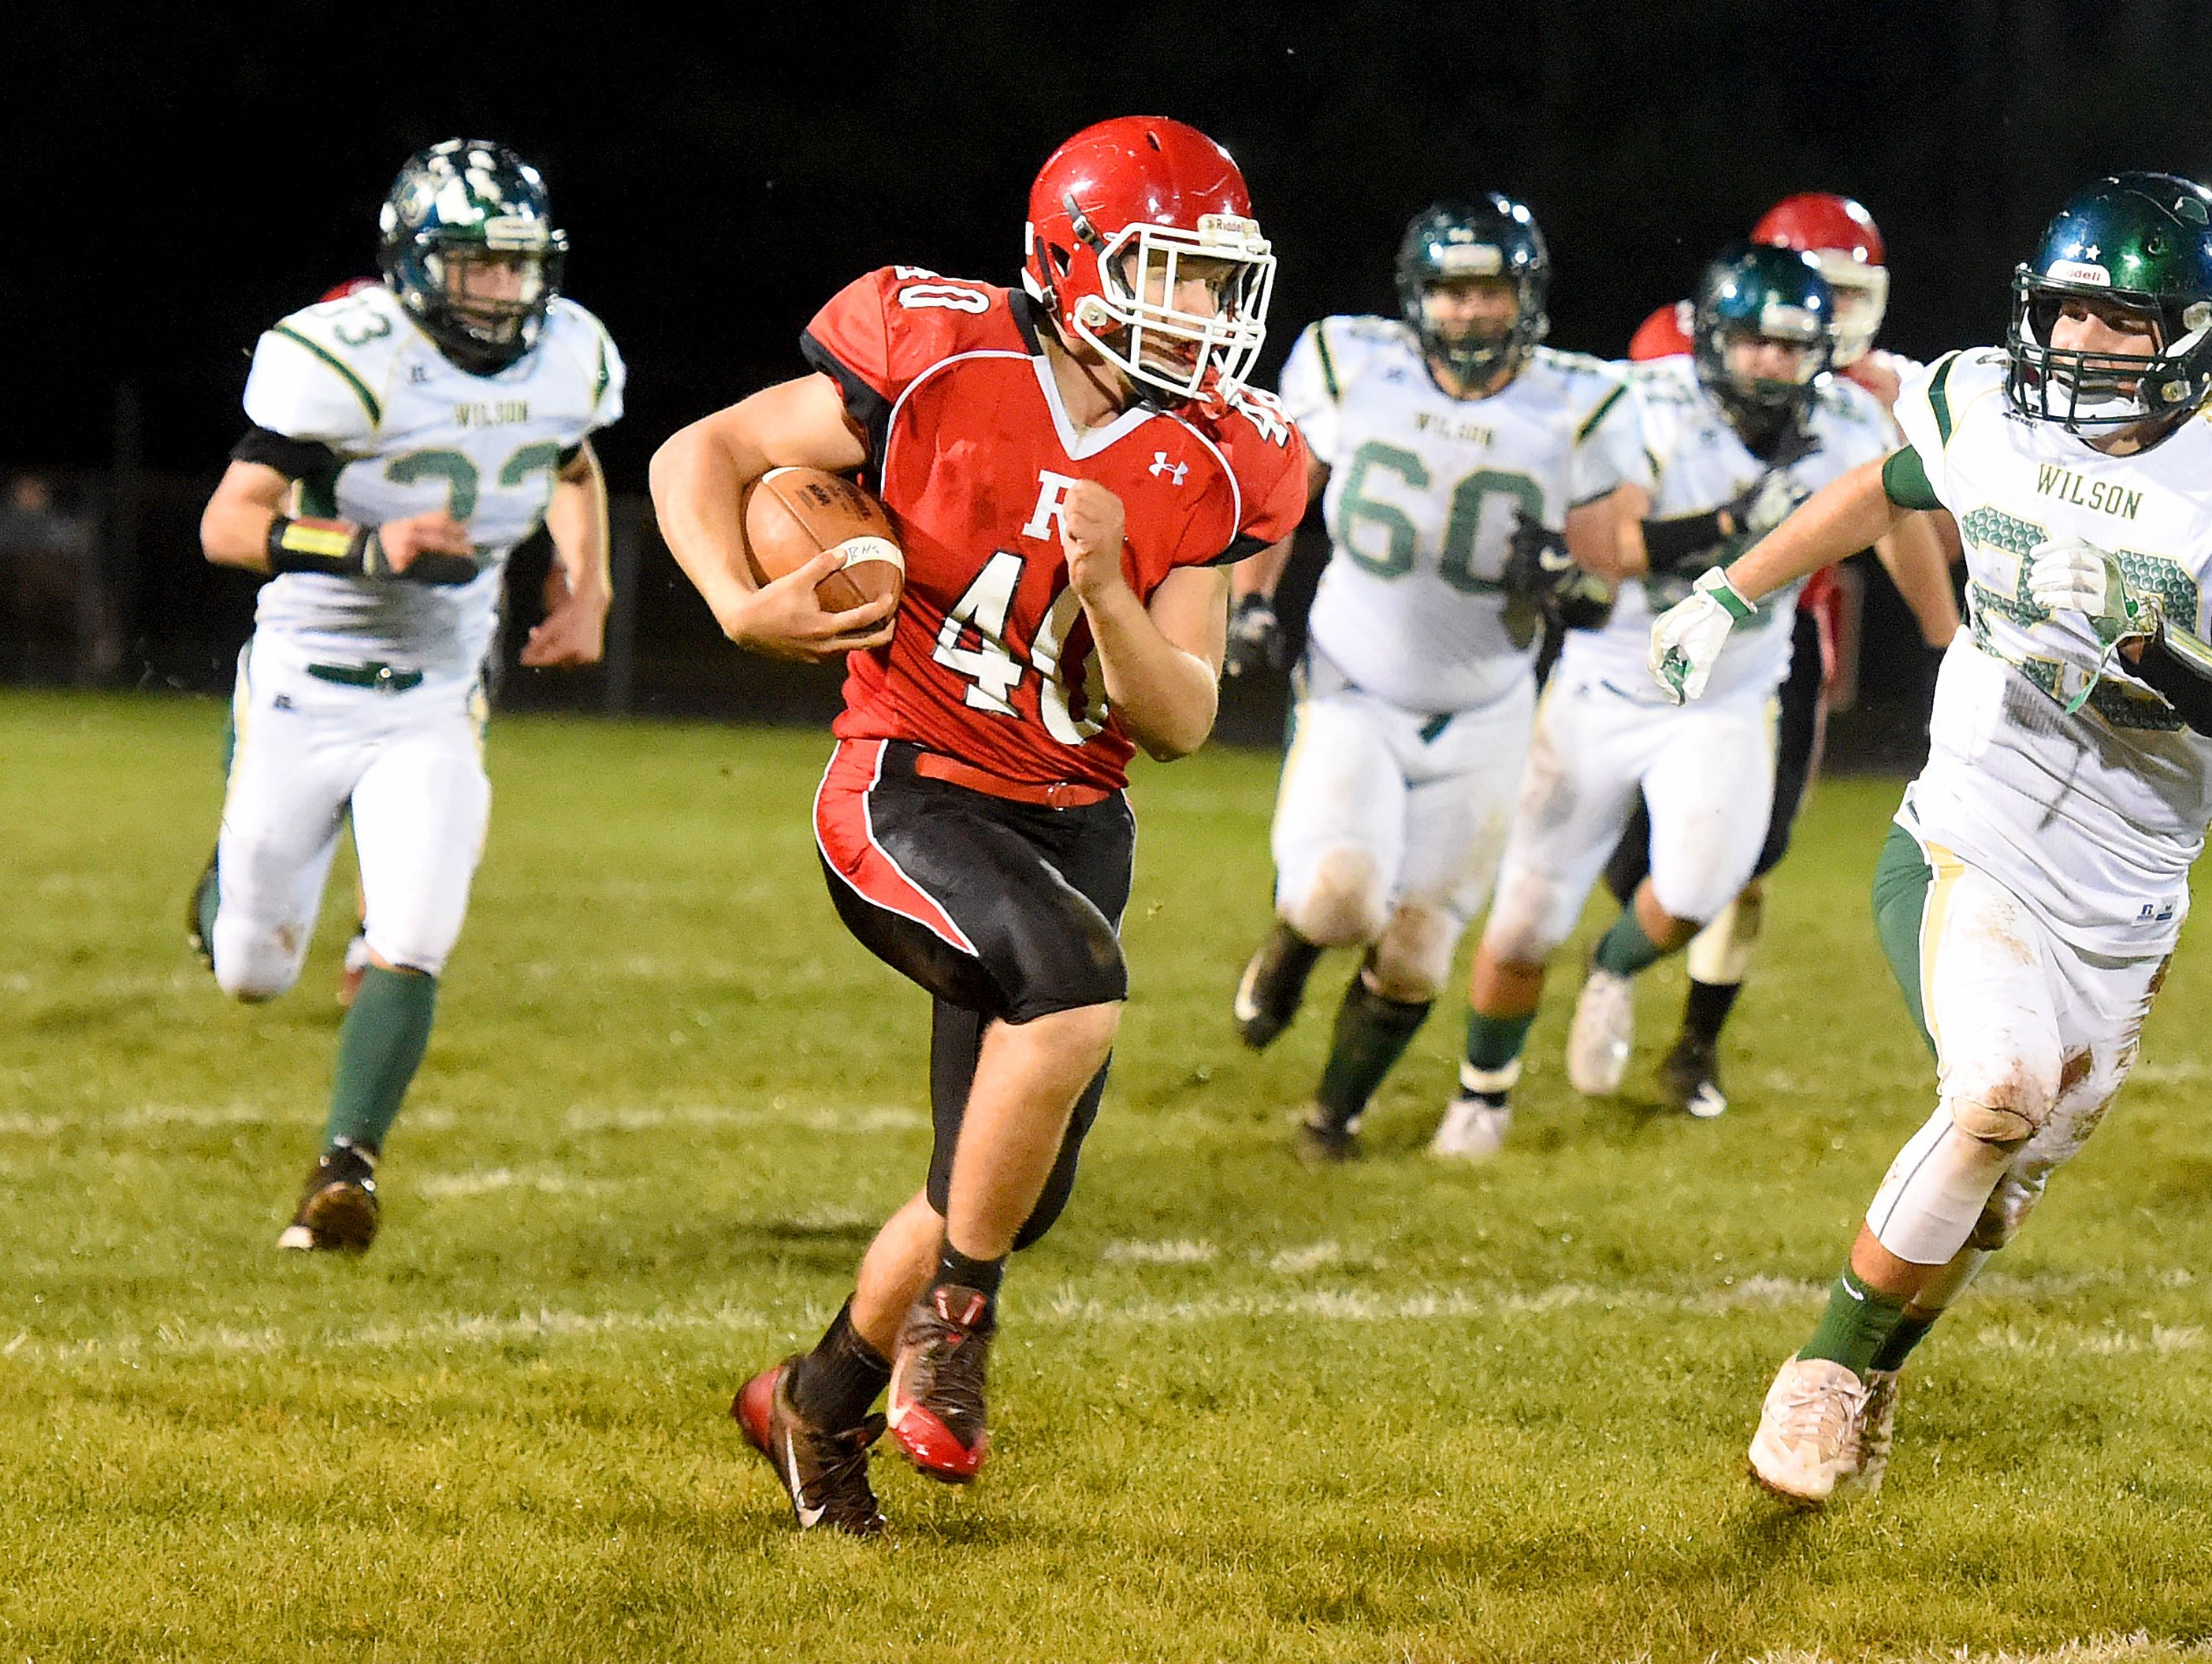 Riverheads' Harrison Schaefer breaks away with the football as Wilson Memorial defenders close in and pursue during a football game played in Greenville on Friday, Oct. 21, 2016. Schaefer makes it into the end zone for a touchdown on the play.